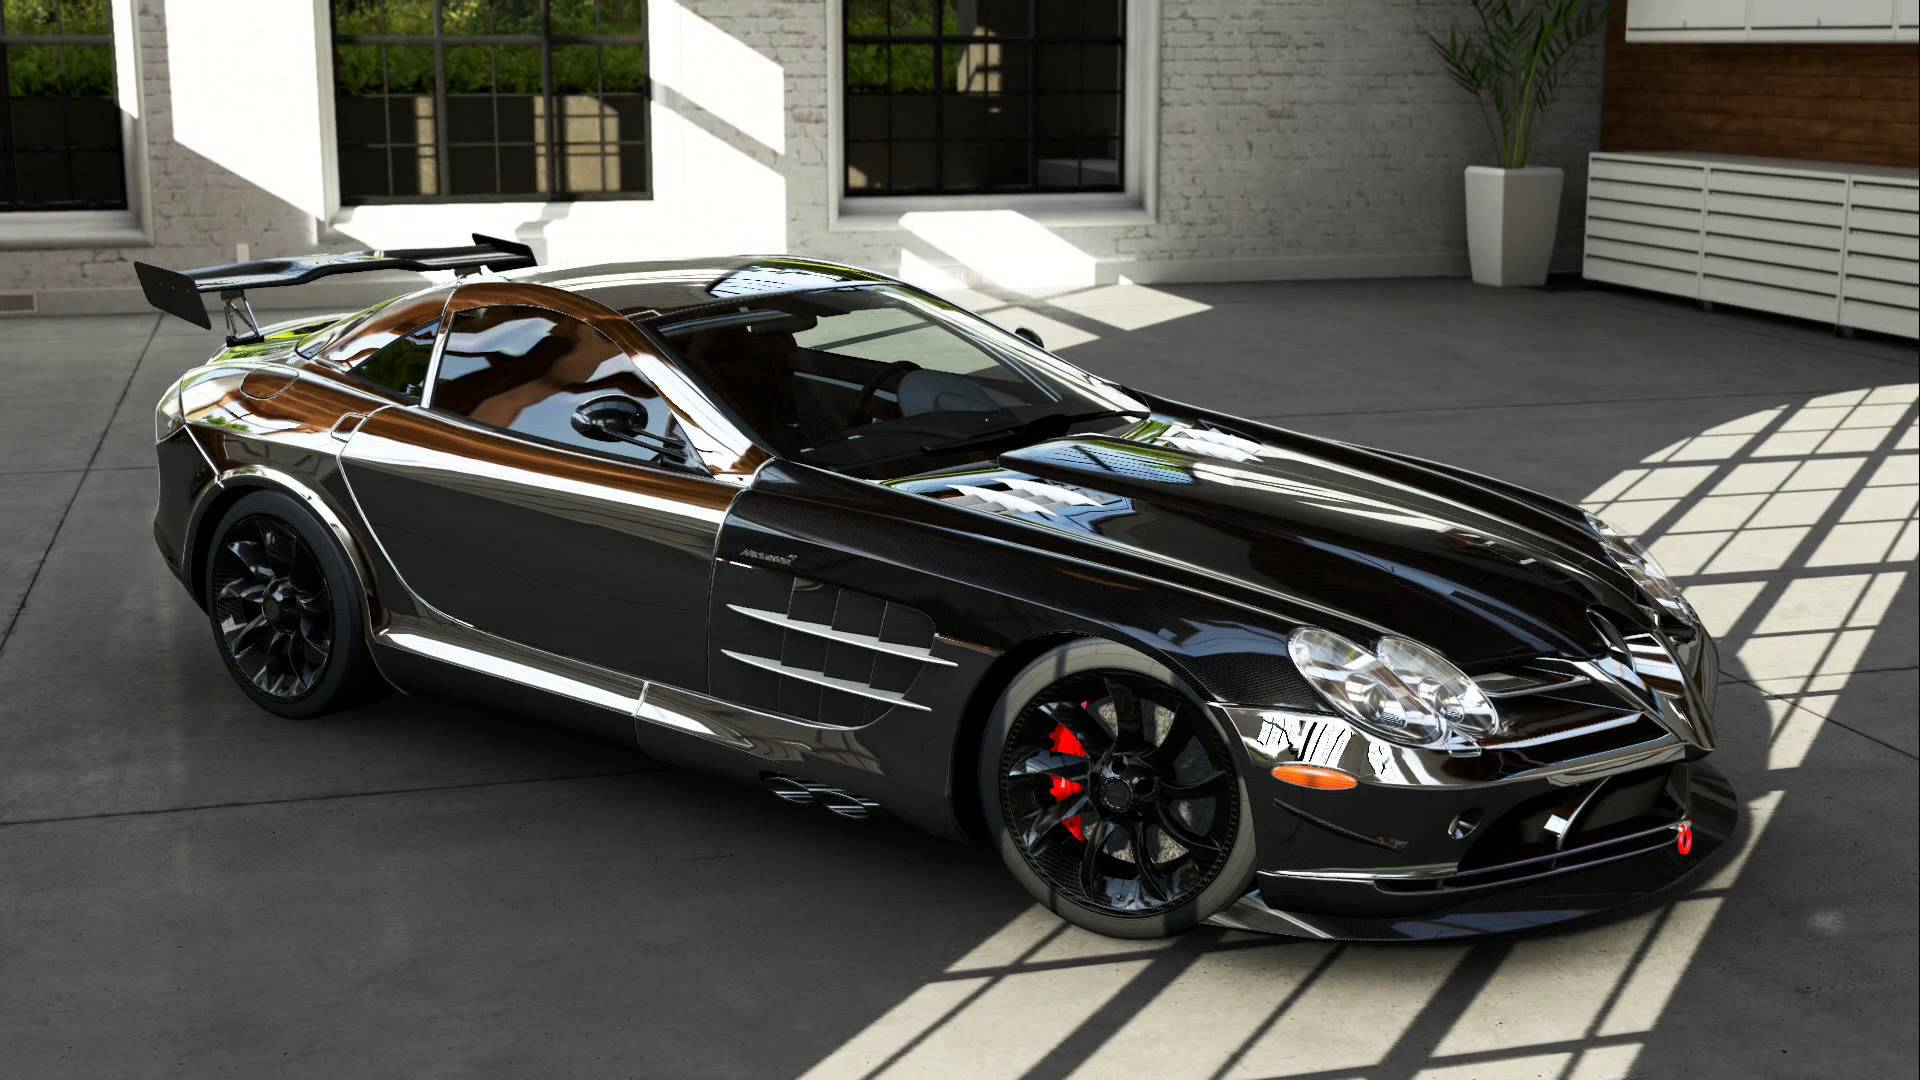 Mercedes Benz Slr Mclaren Wallpapers Images Photos